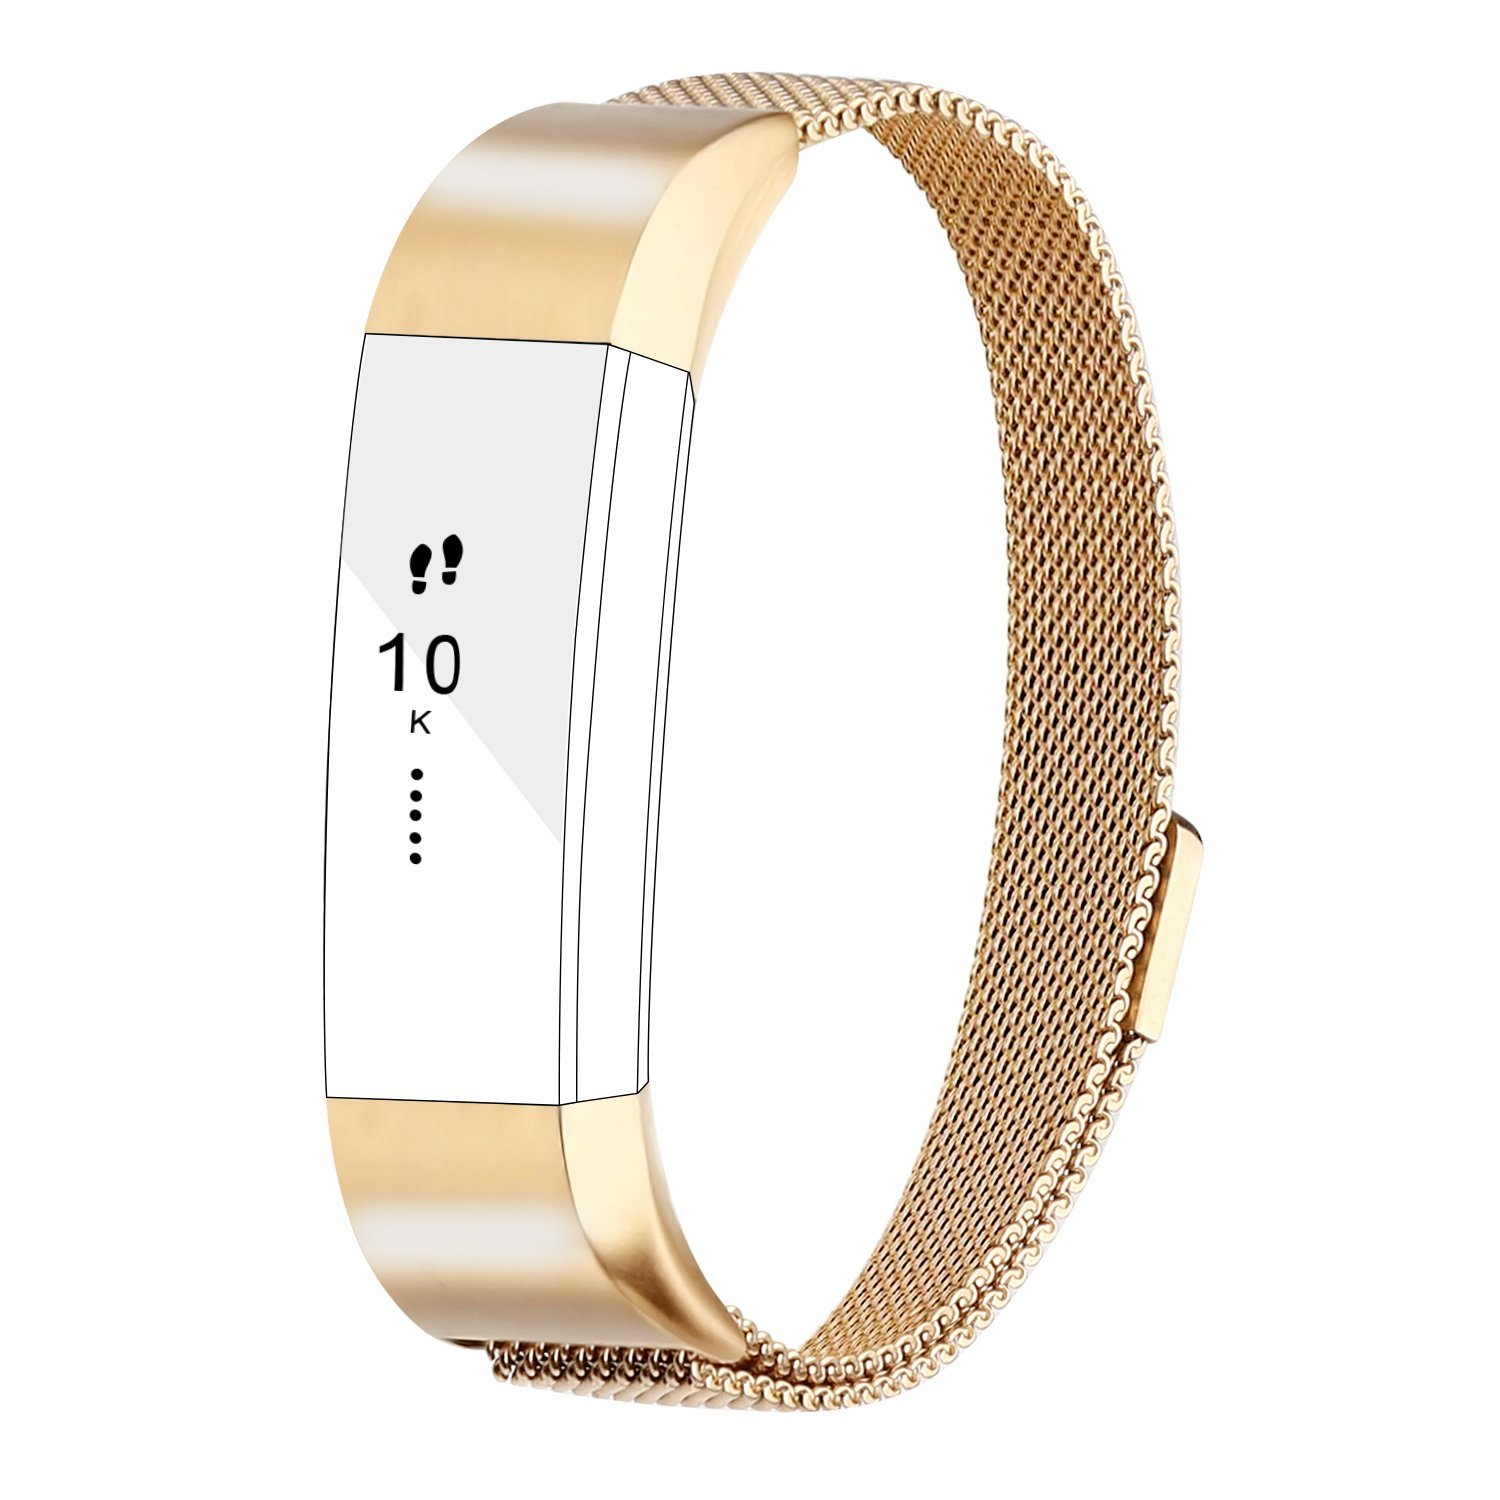 For Fitbit Alta Bands Alta HR Bands, Replacement Accessories Milanese Loop Stainless Steel Metal Bracelet Strap with Magnet Lock for Fitbit Alta HR Wristband-Silver